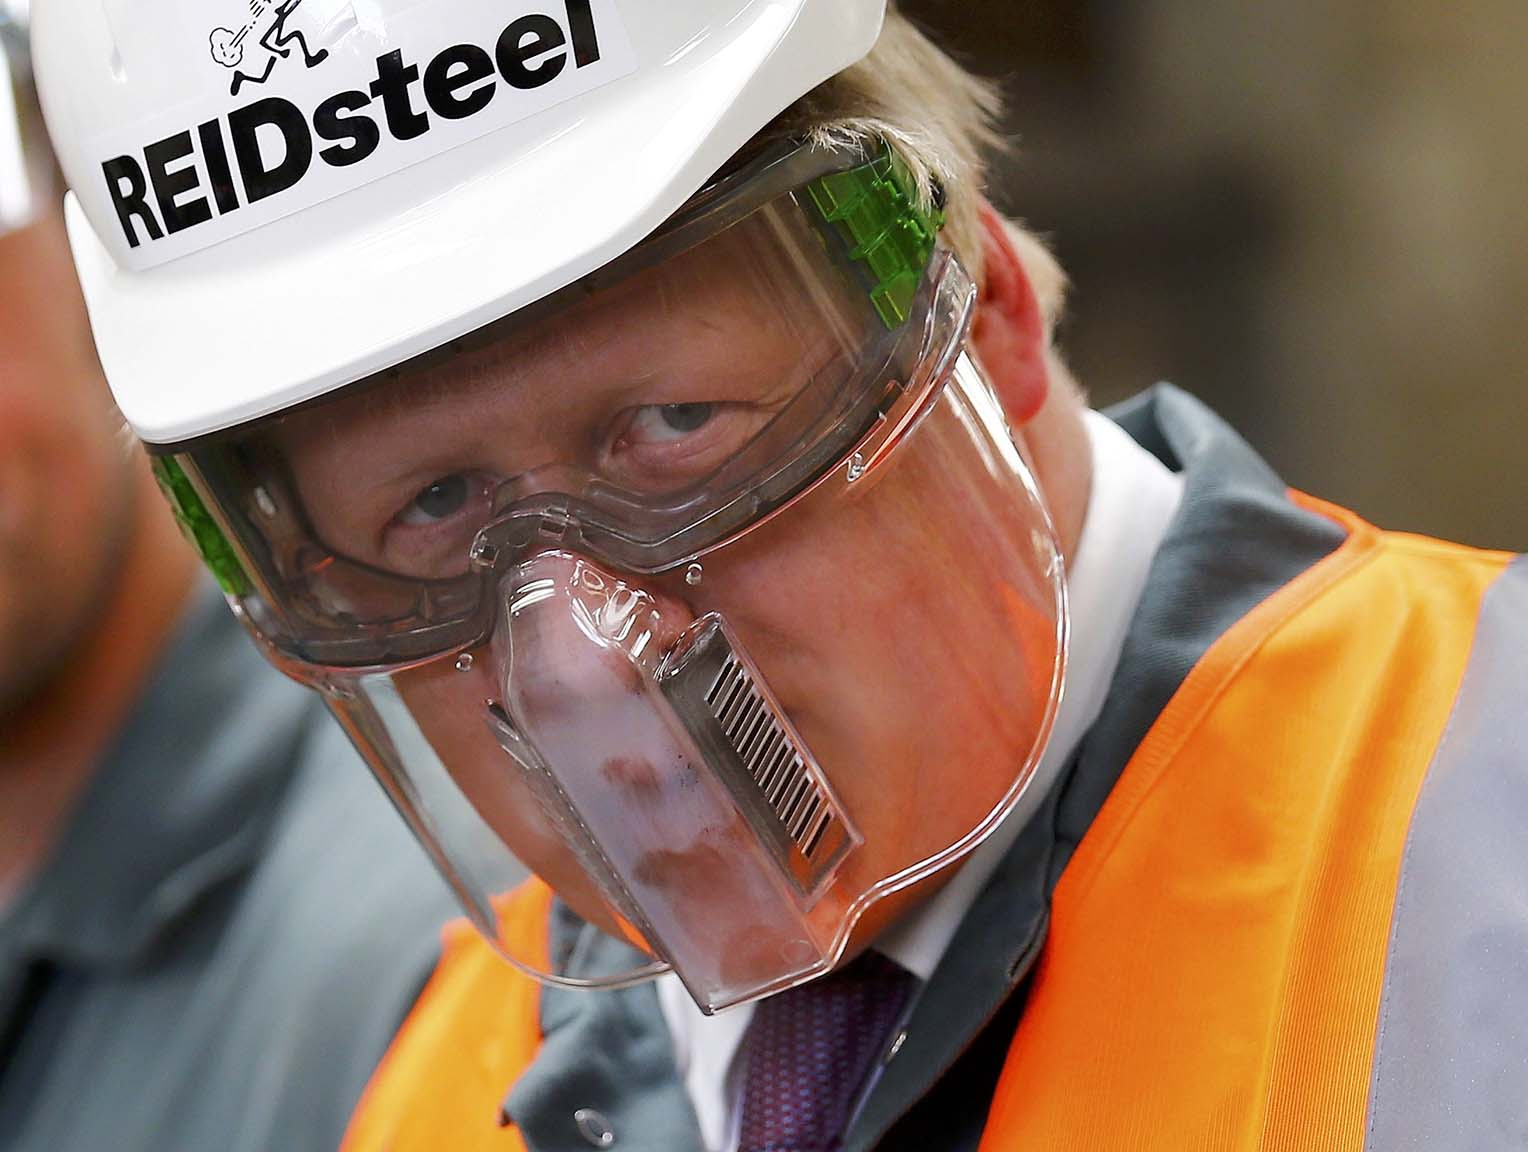 Former mayor of London and Vote Leave campaigner Boris Johnson wears protective equipment as he visits Reid Steel during a campaign stop in Christchurch